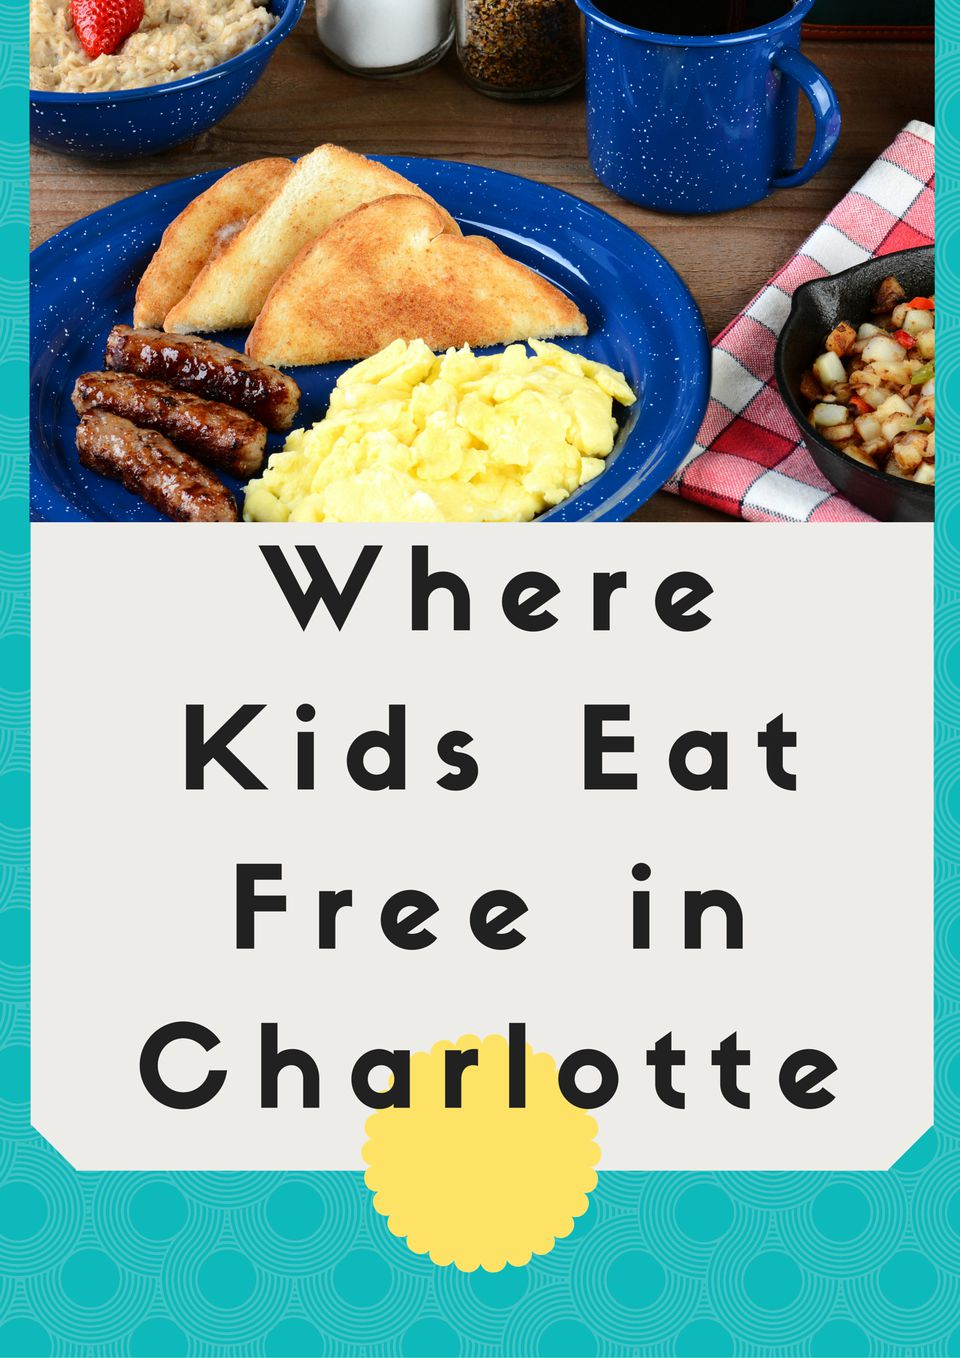 Where Kids Eat Free in Charlotte